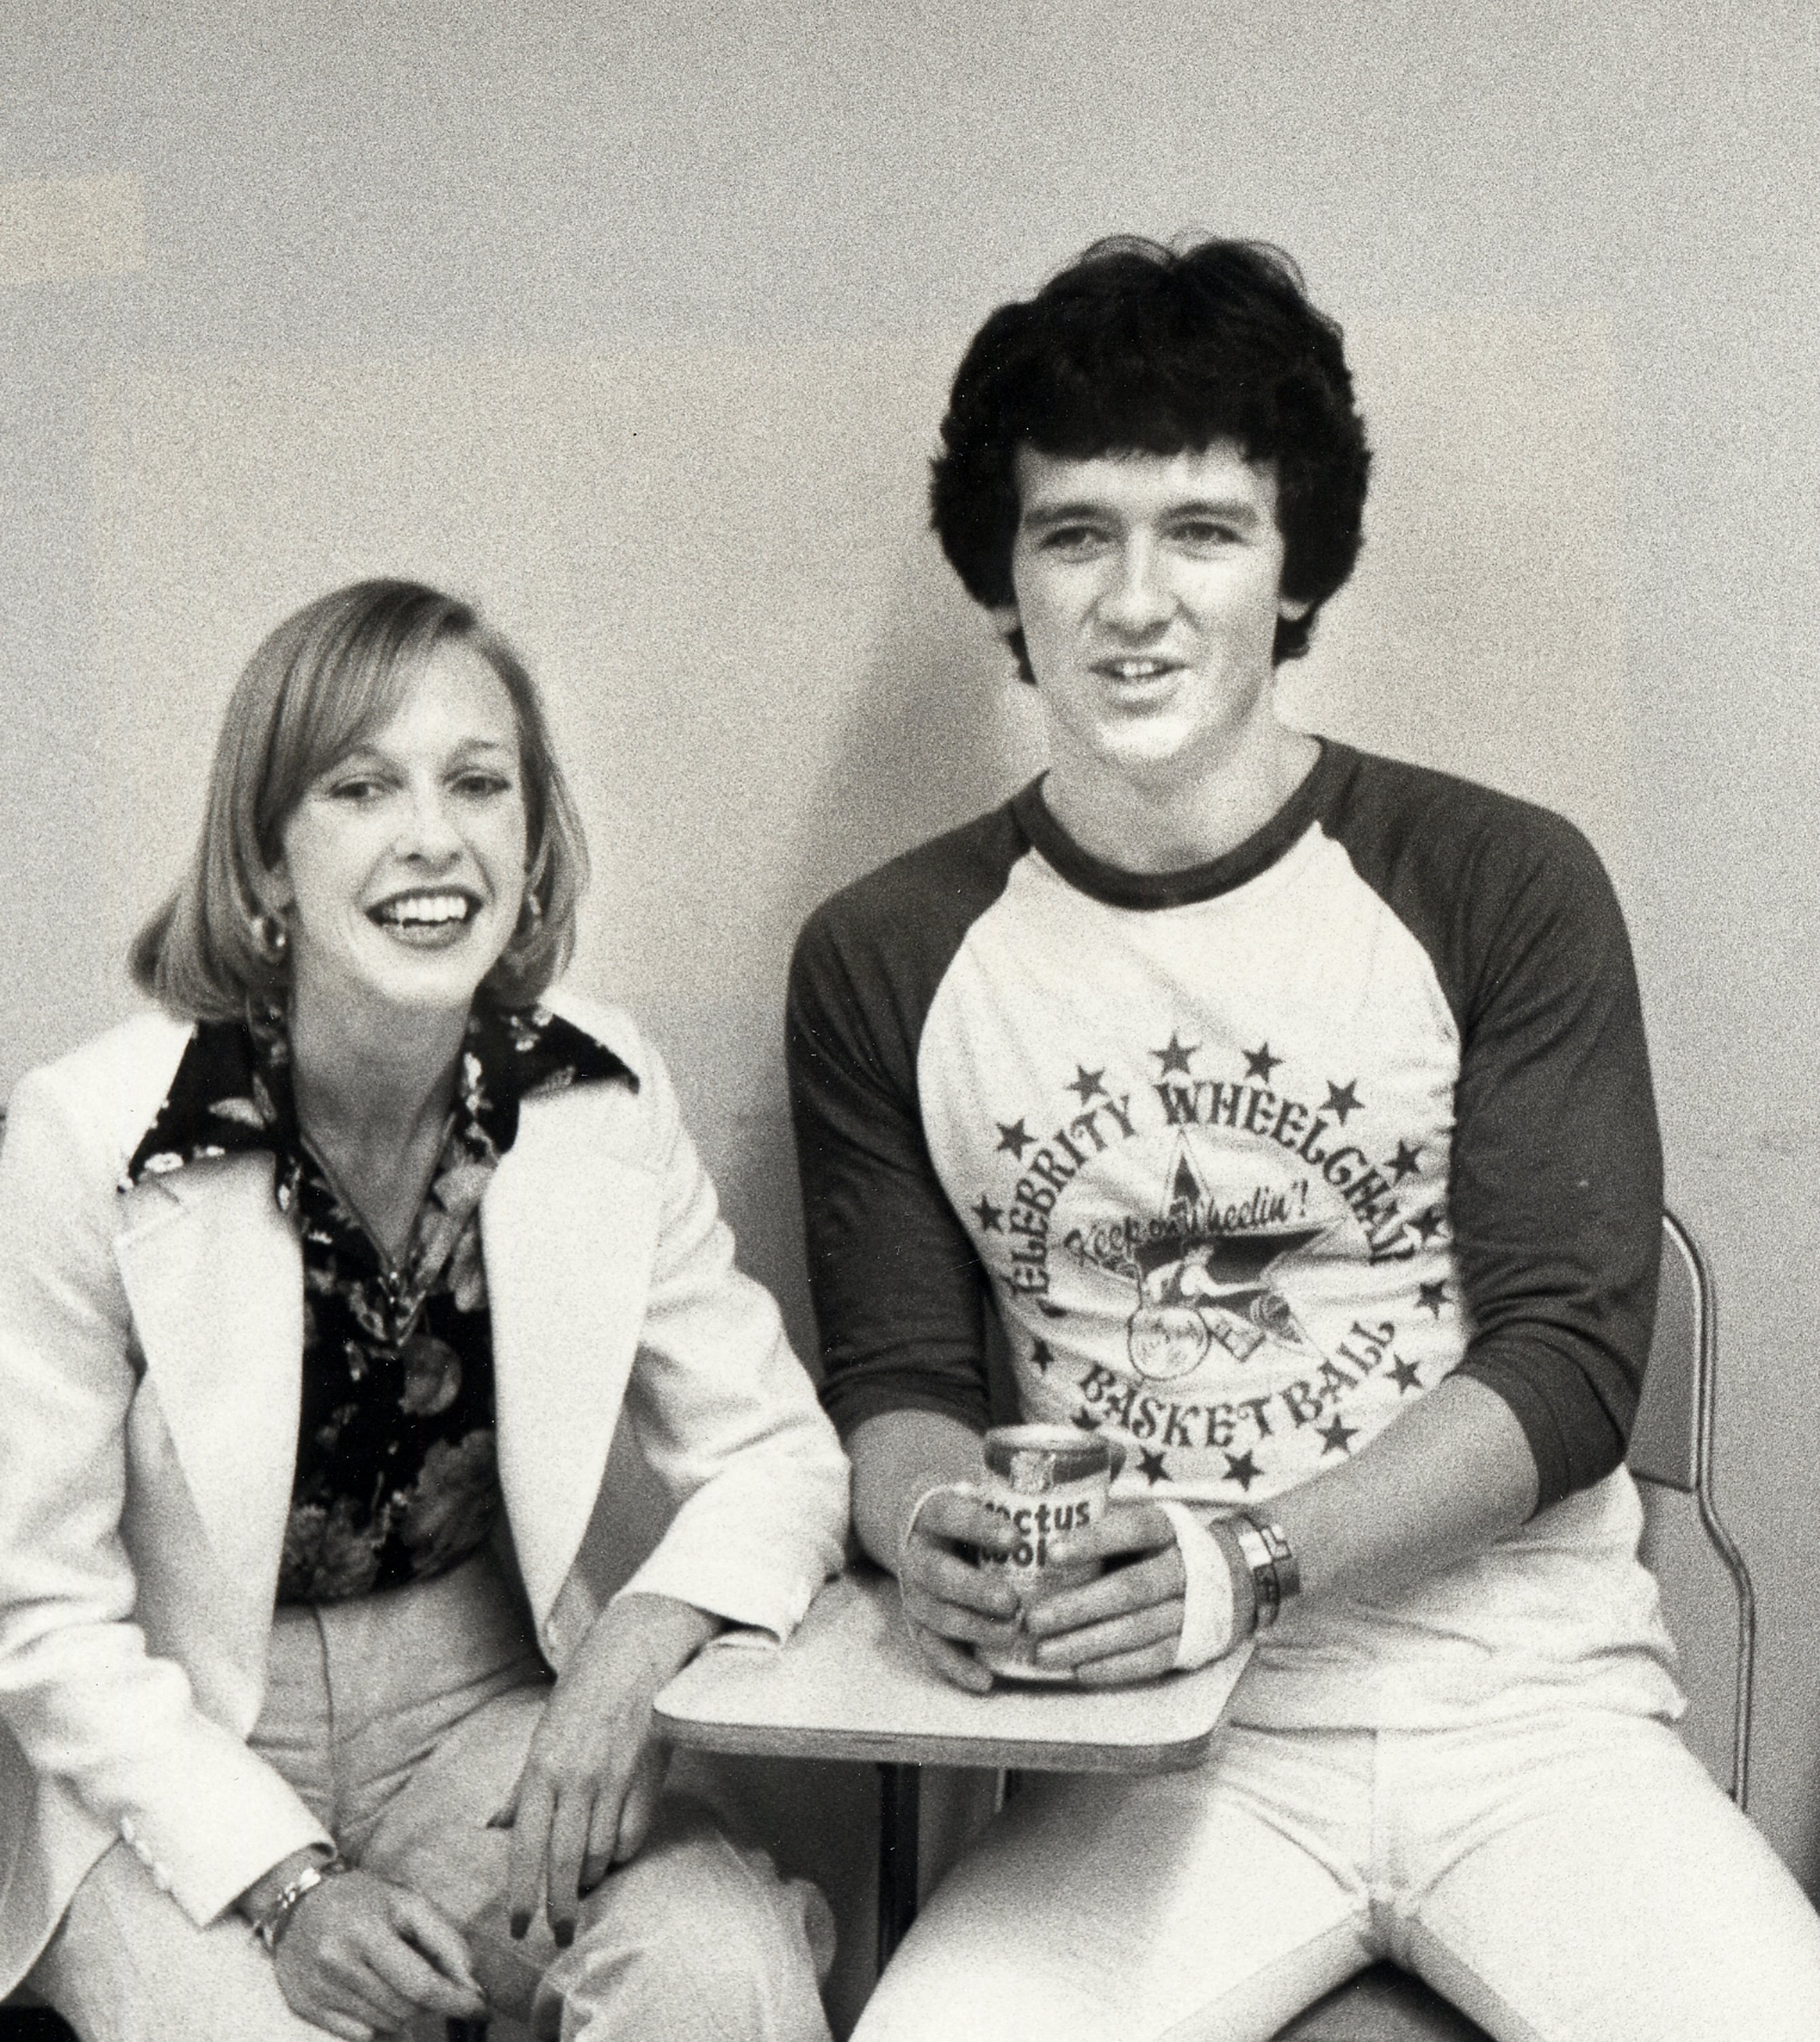 Patrick Duffy and wife Carlyn Rosser attend a basketball game at California State University on May 22, 1977 in Northridge. | Source: Getty Images